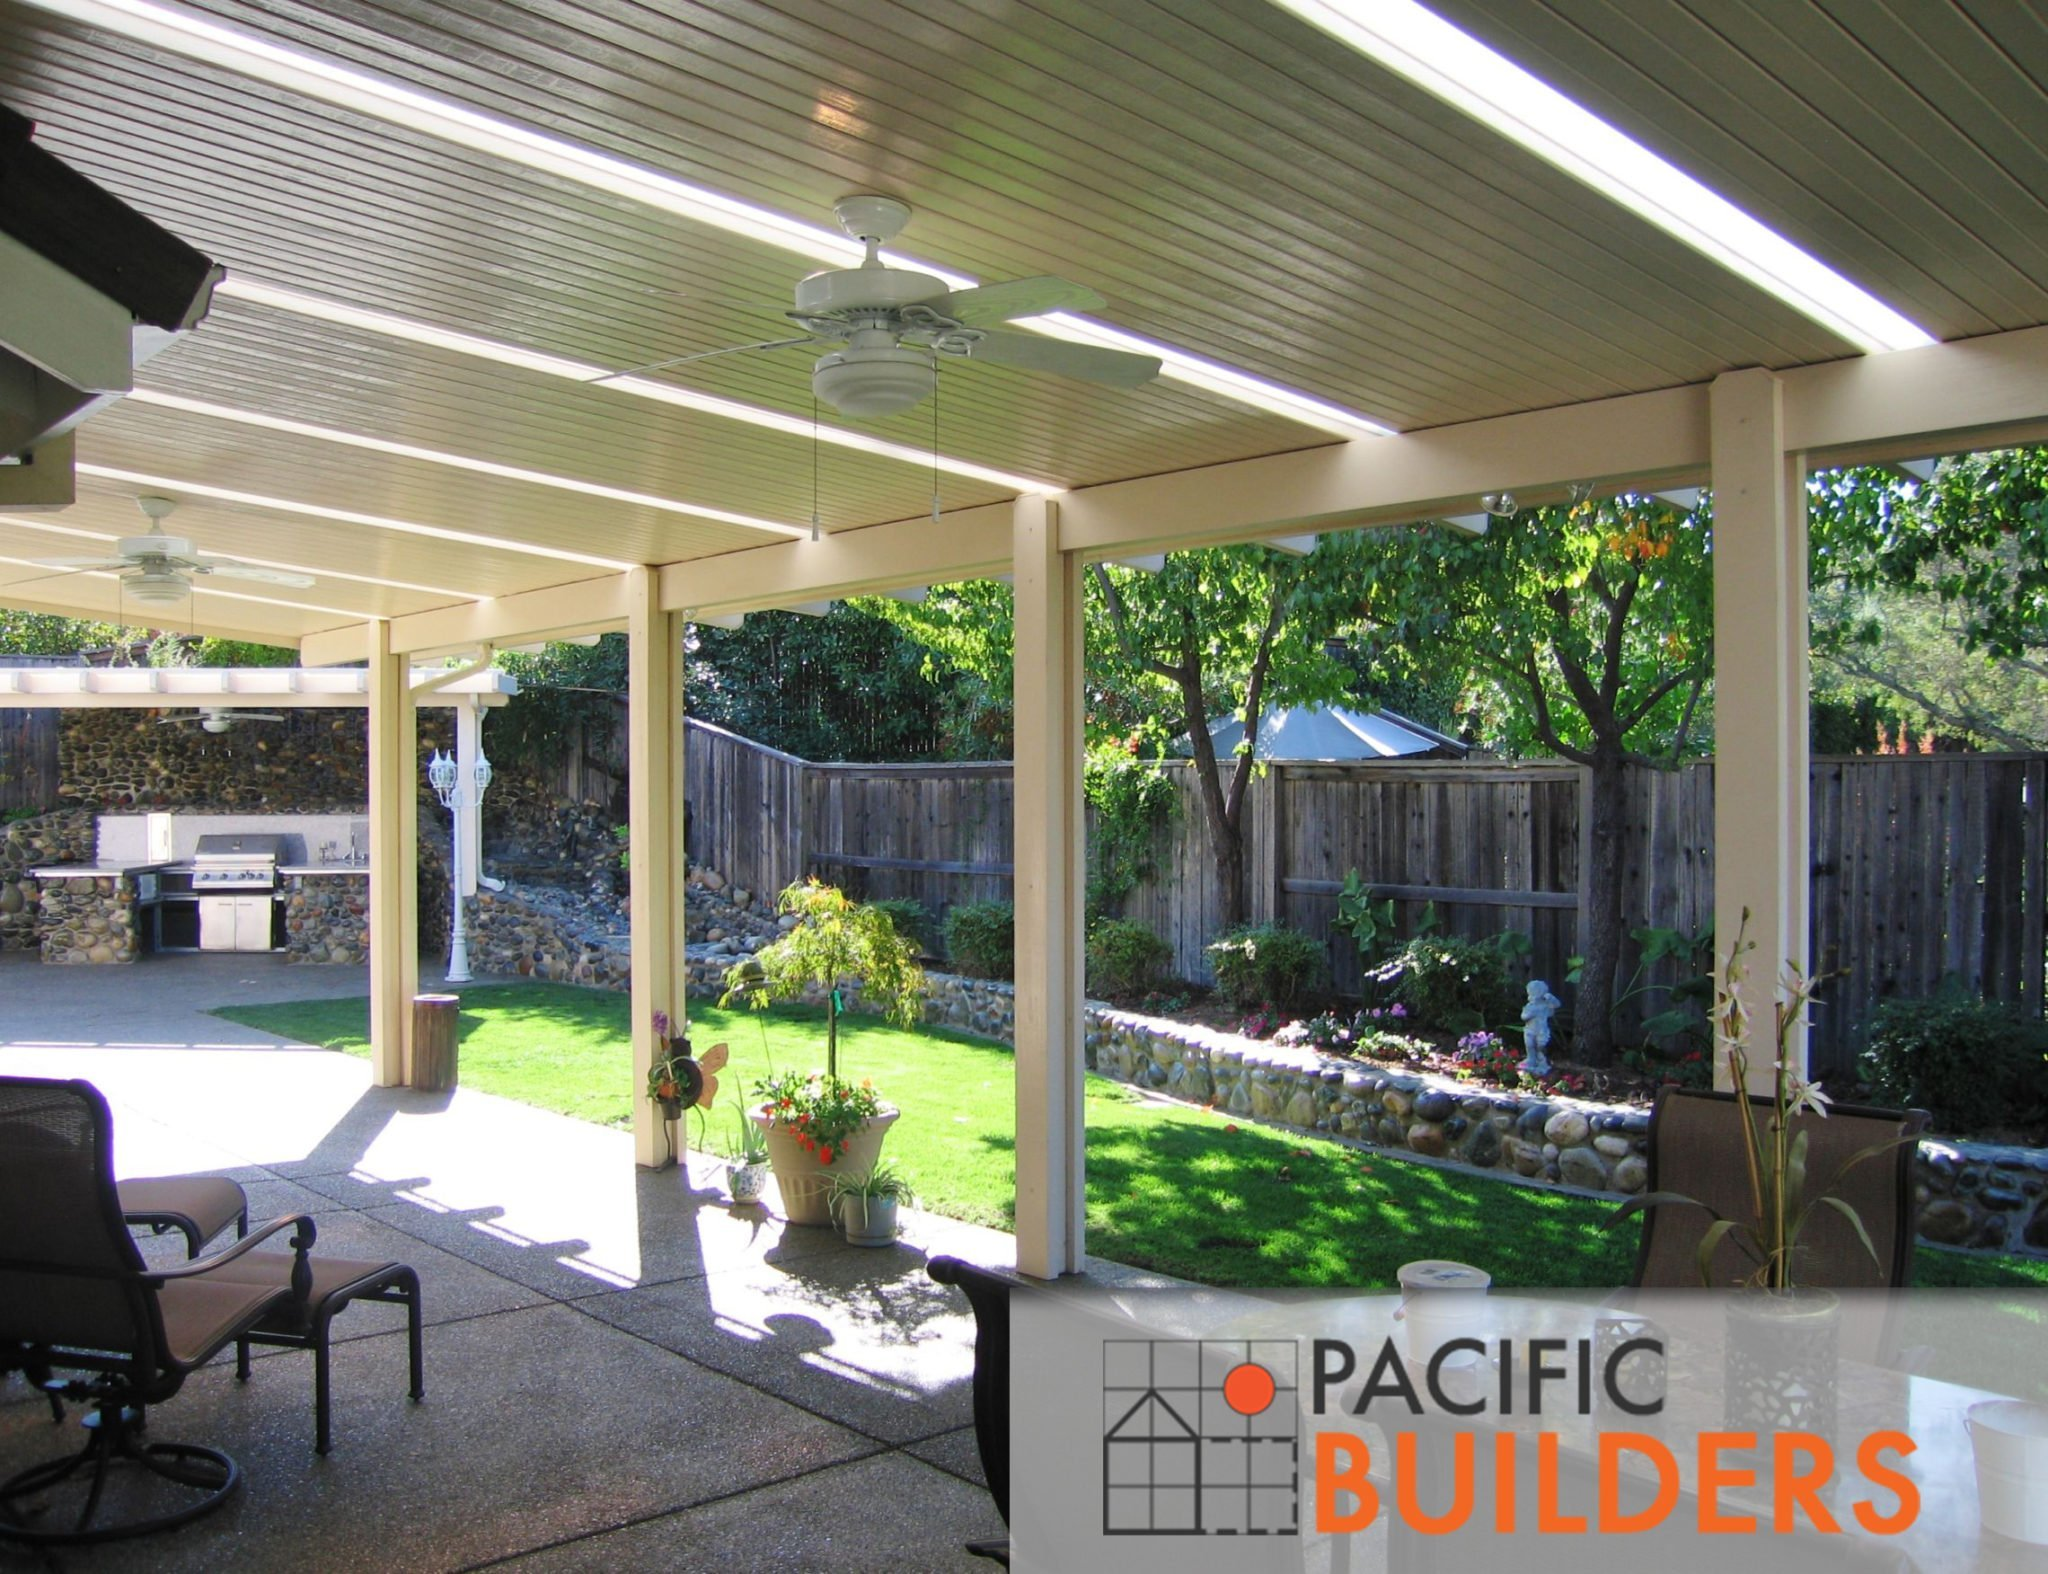 Benefits of covered patios in sacramento pacific builders pacfic builders patio cover blog post solutioingenieria Gallery